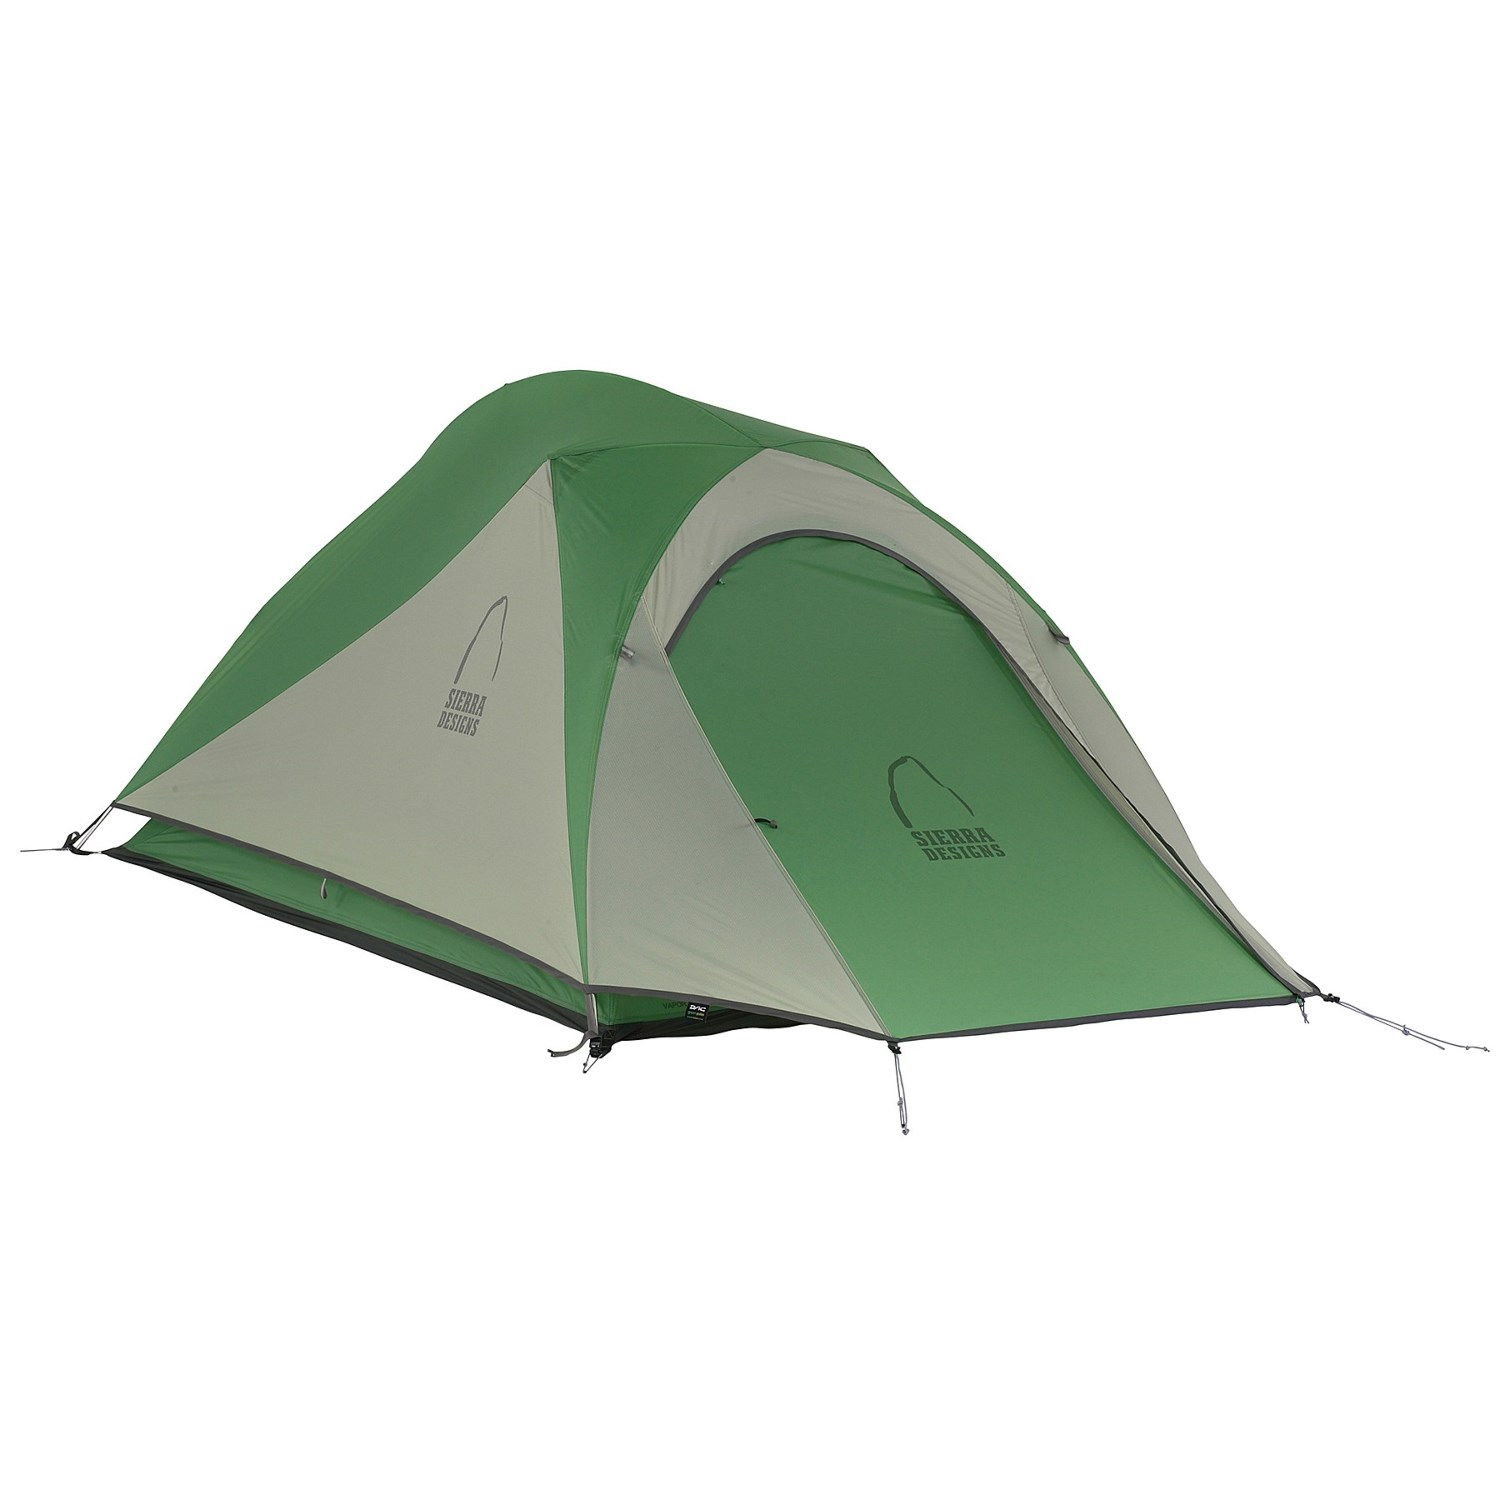 how to set up a tent footprint